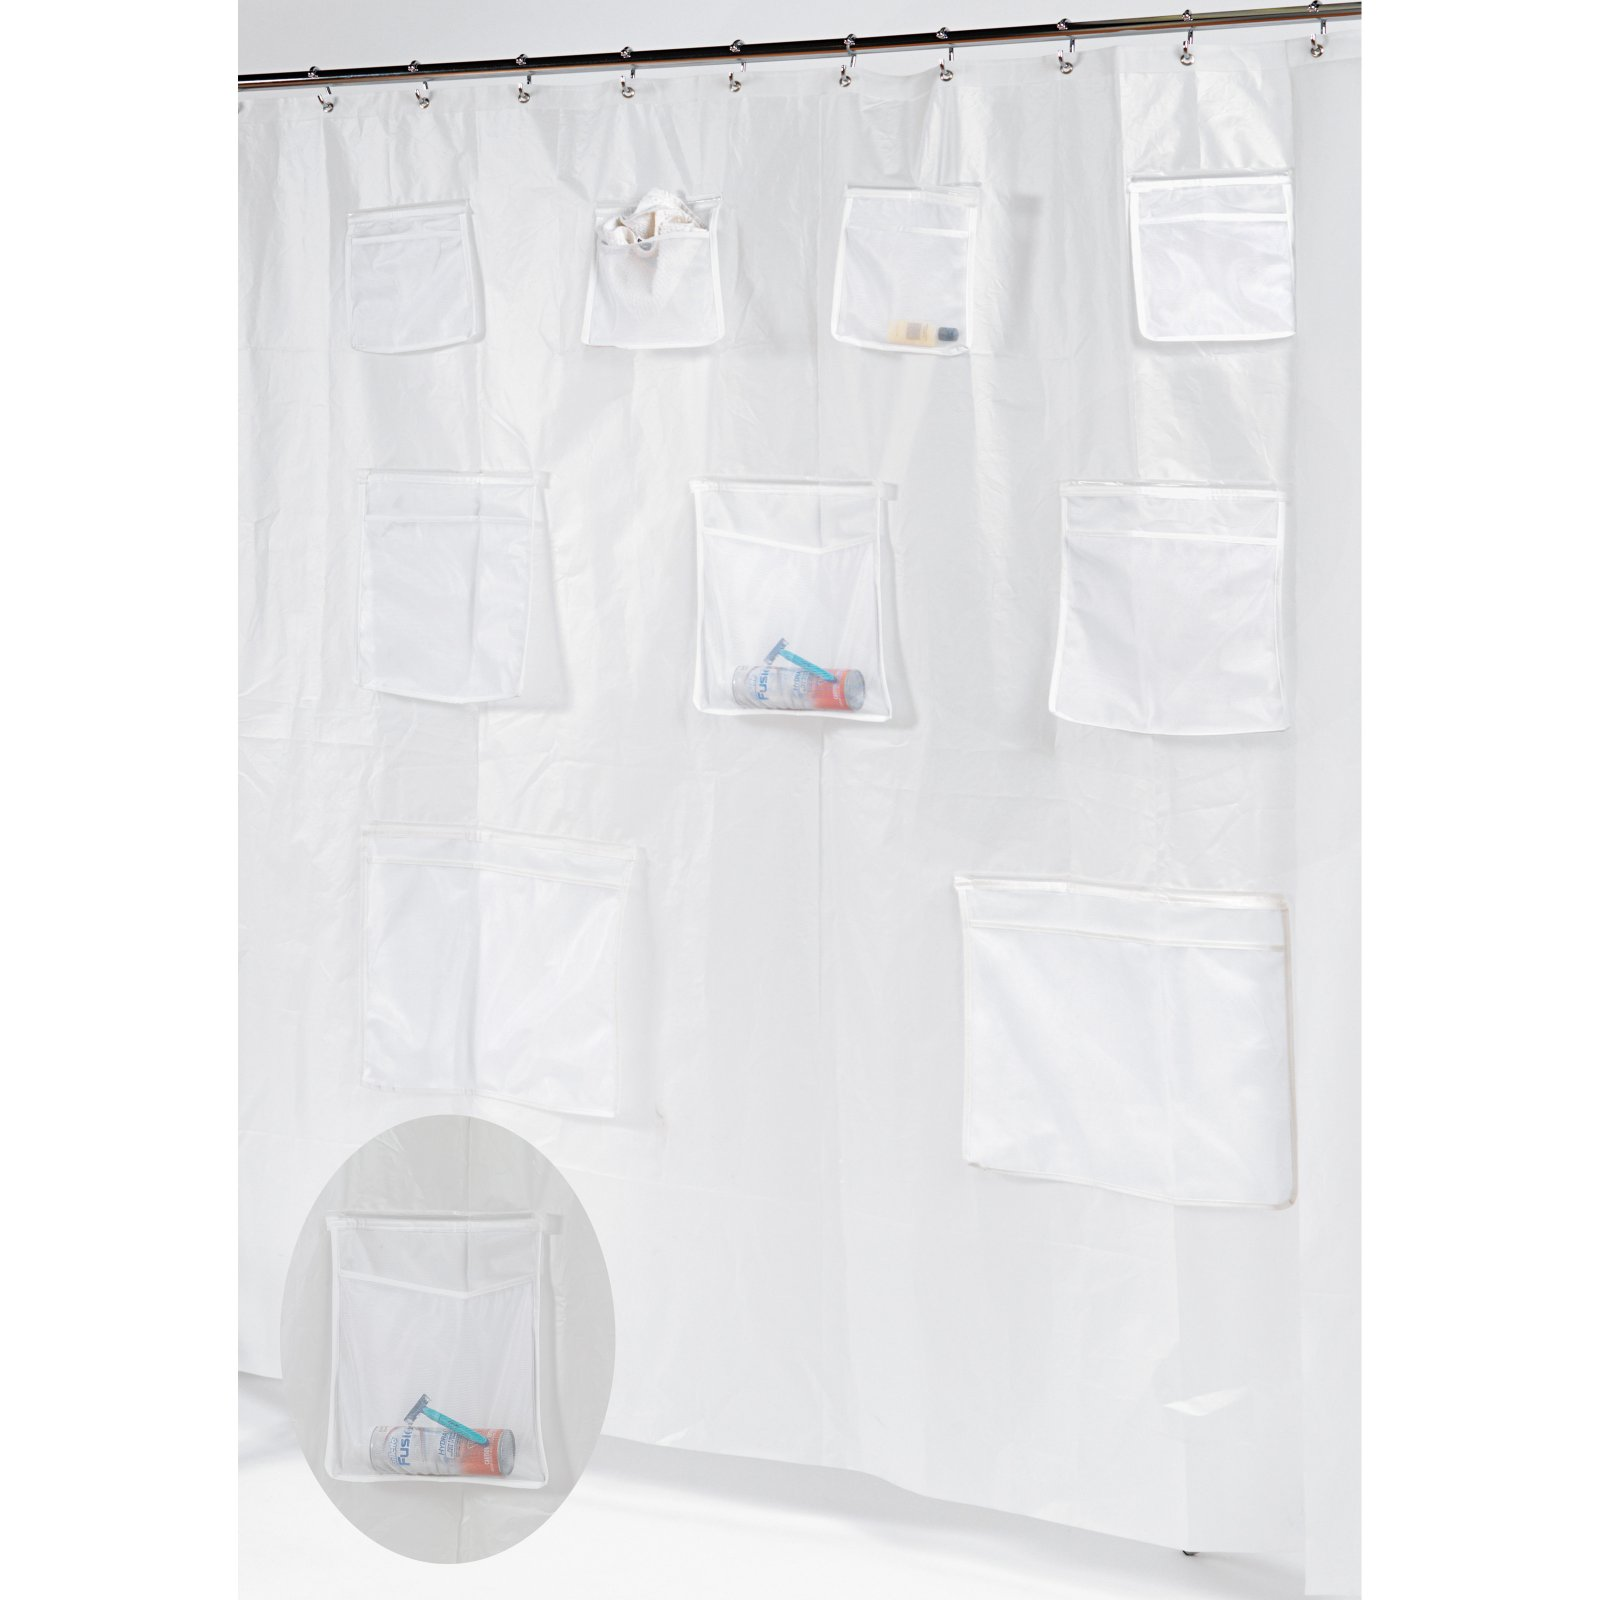 "Click here to buy ""Pockets"" PEVA Shower Curtain in Frosty Clear by Carnation Home Fashions."